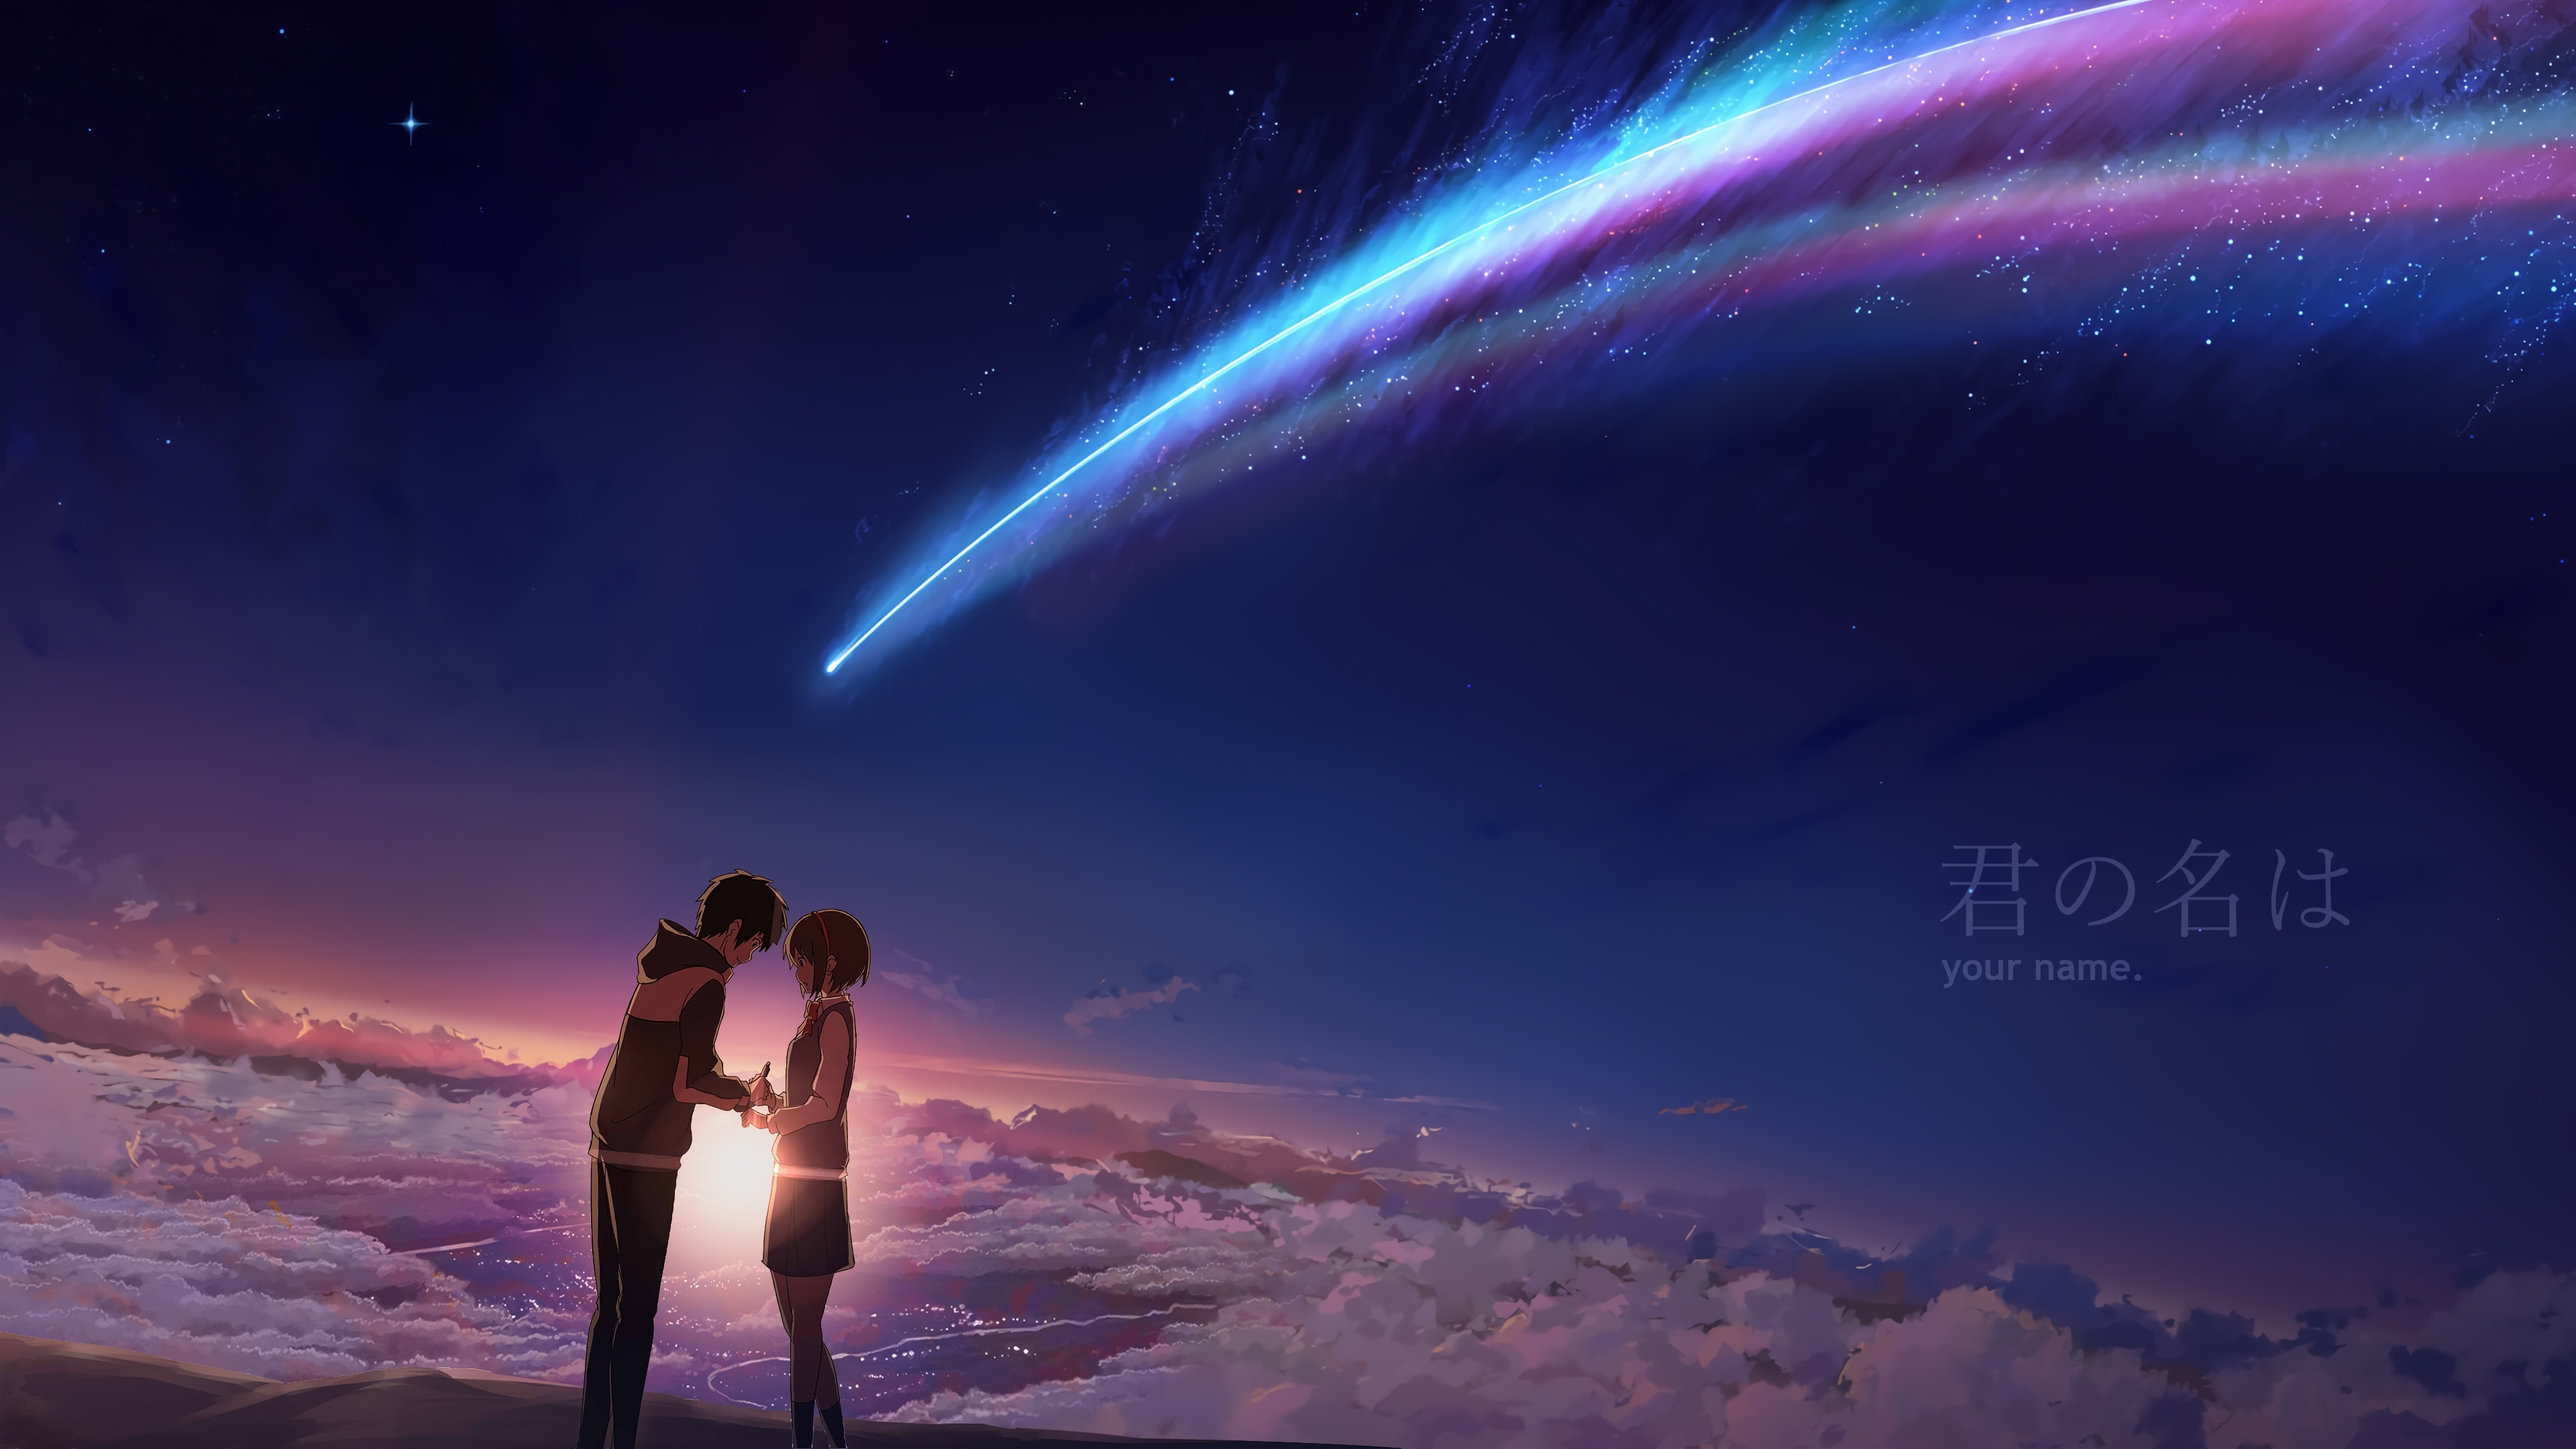 kimi no na wa. (your name.) hd wallpaper #2178969 - zerochan anime